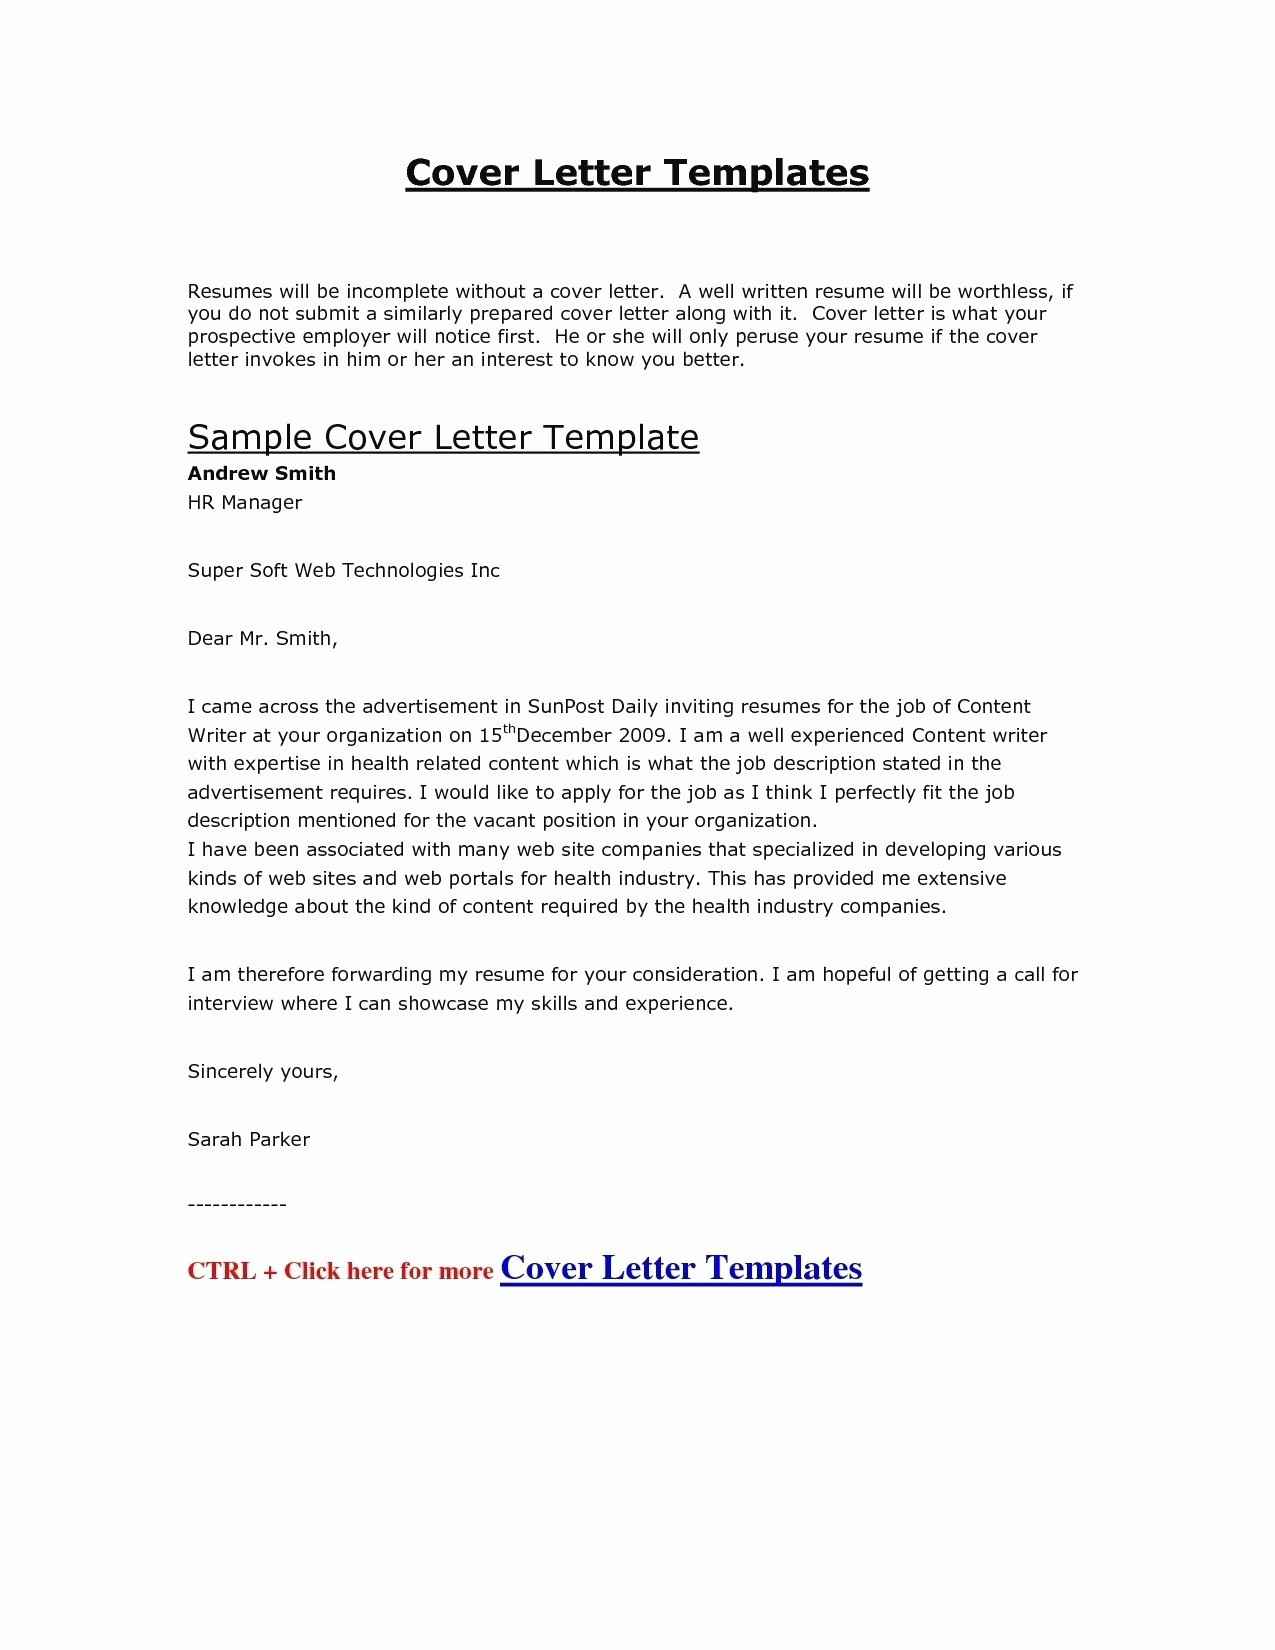 Bank Resume Template - Job Apply Cover Letter Bank Letter format formal Letter Template